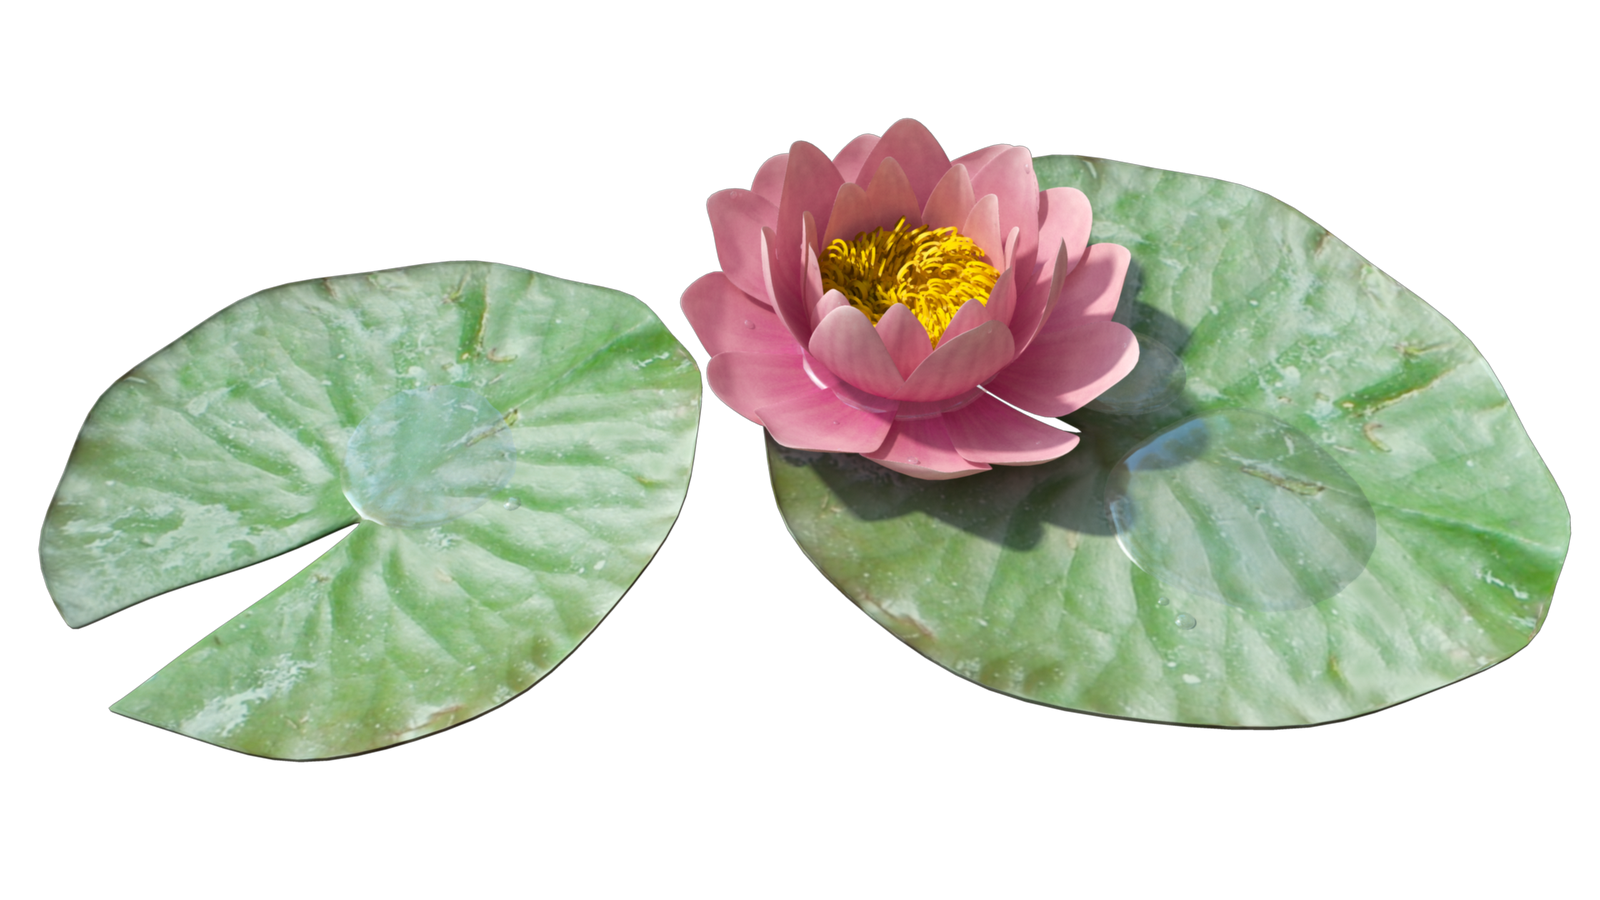 Water lily flower clipart banner royalty free stock Water Lily PNG Transparent Images | PNG All banner royalty free stock